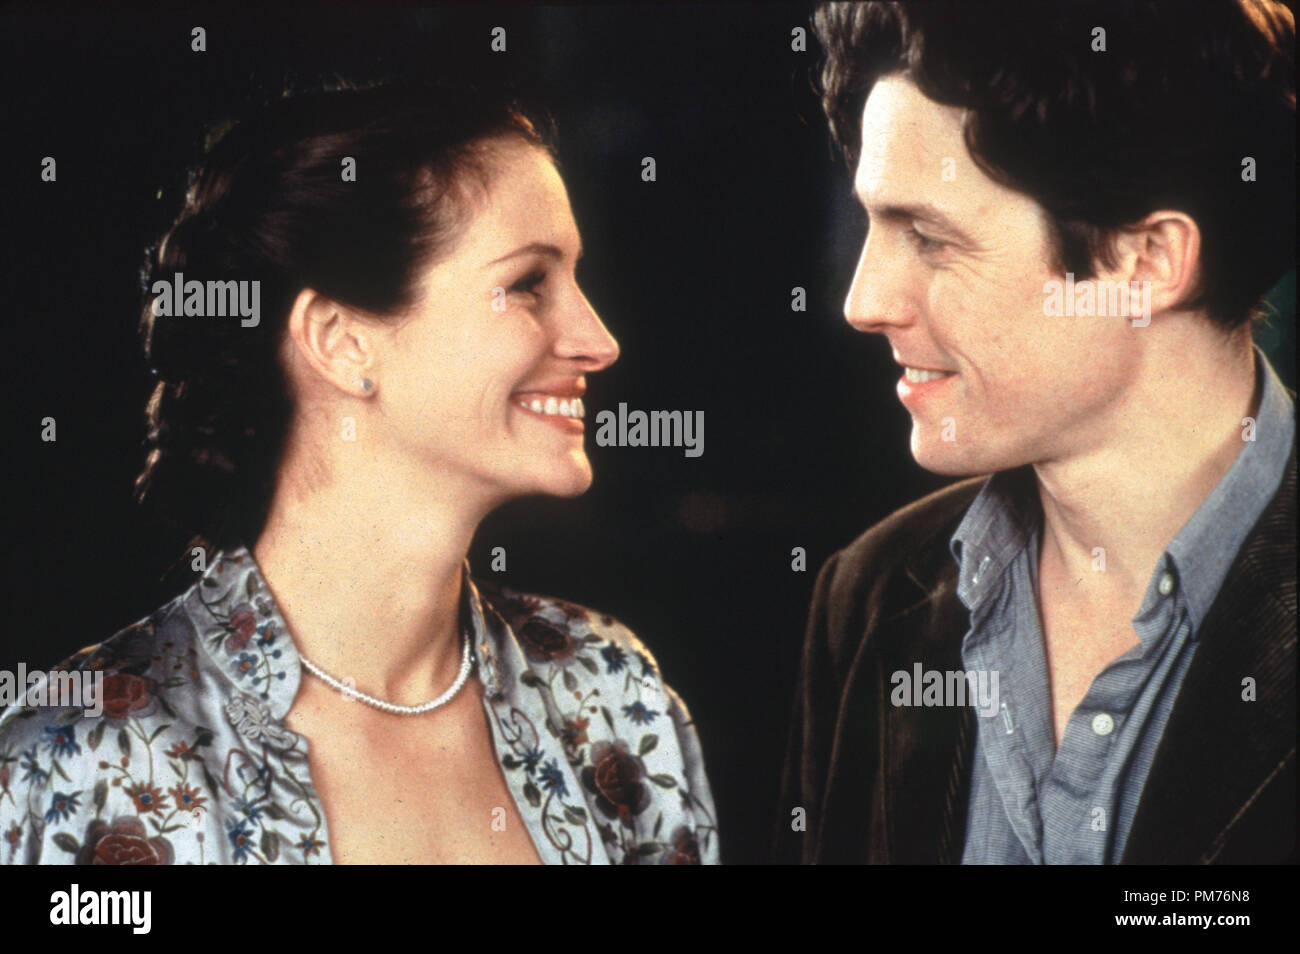 Film Still / Publicity Still from 'Notting Hill' Julia Roberts, Hugh Grant © 1999 Universal Photo Credit: Clive Coote   File Reference # 30973486THA  For Editorial Use Only -  All Rights Reserved - Stock Image